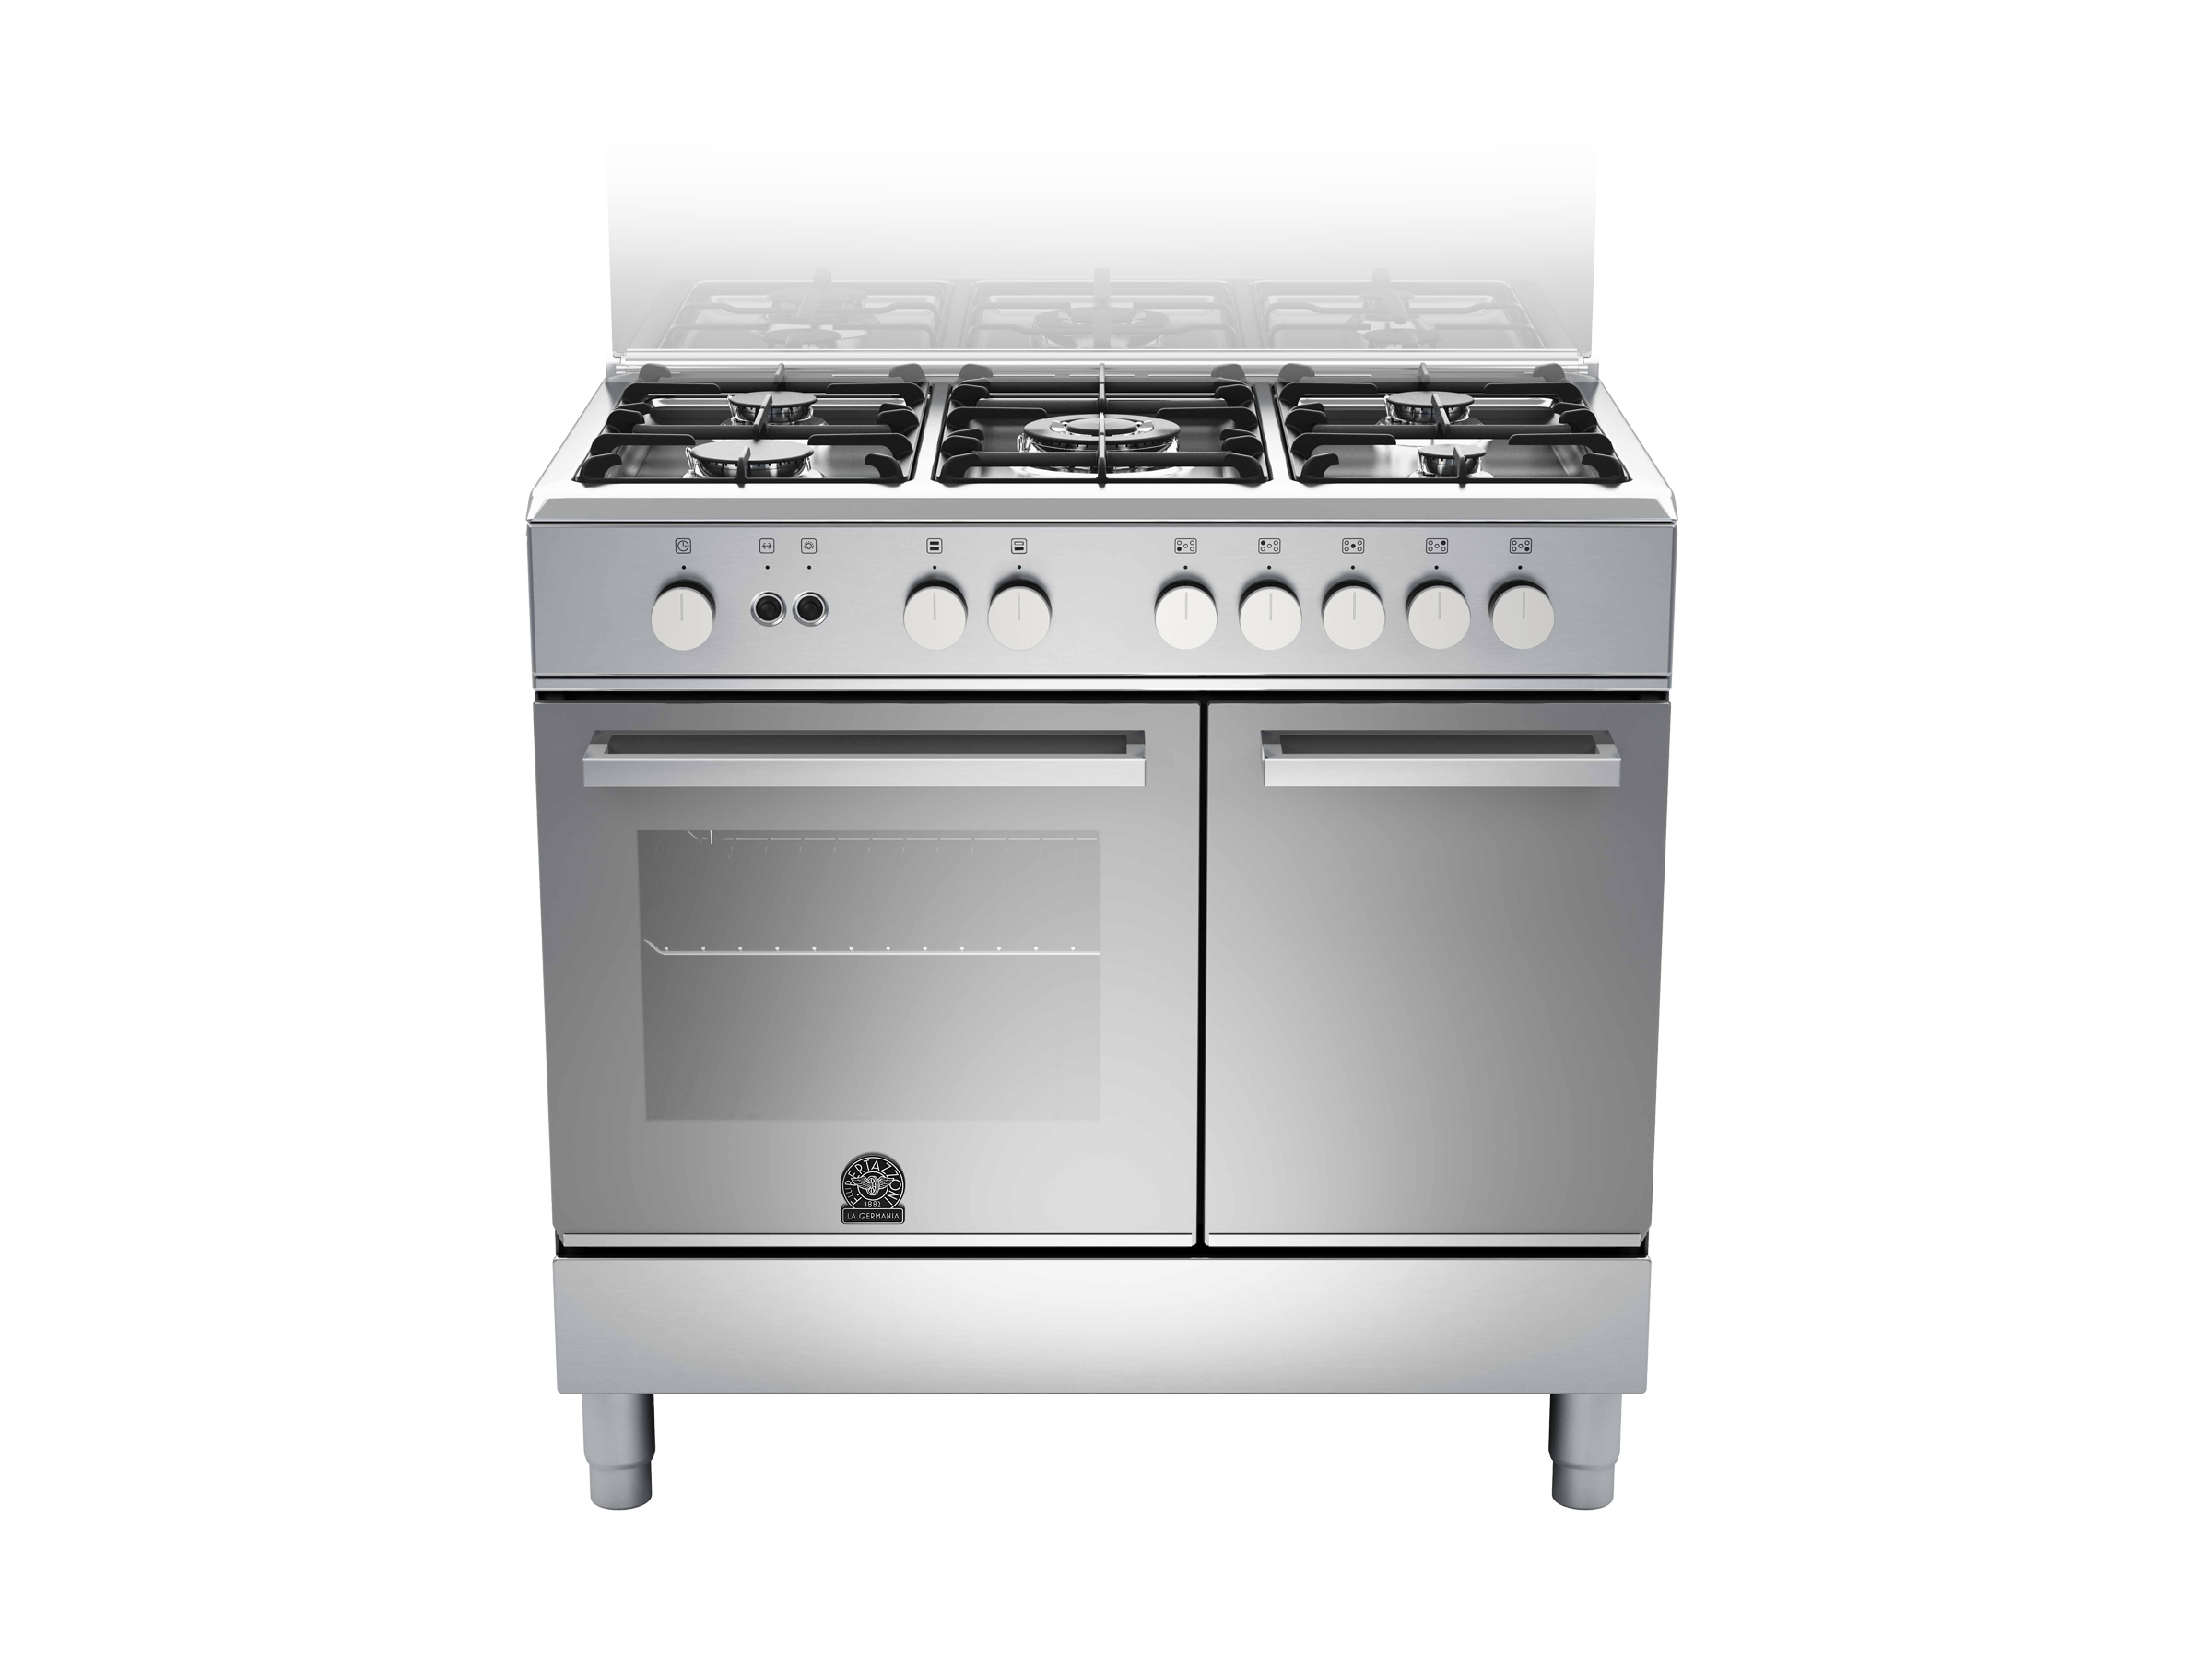 90 5-burners, Gas Oven Gas Grill, Storage Comp. | Bertazzoni La Germania - Stainless